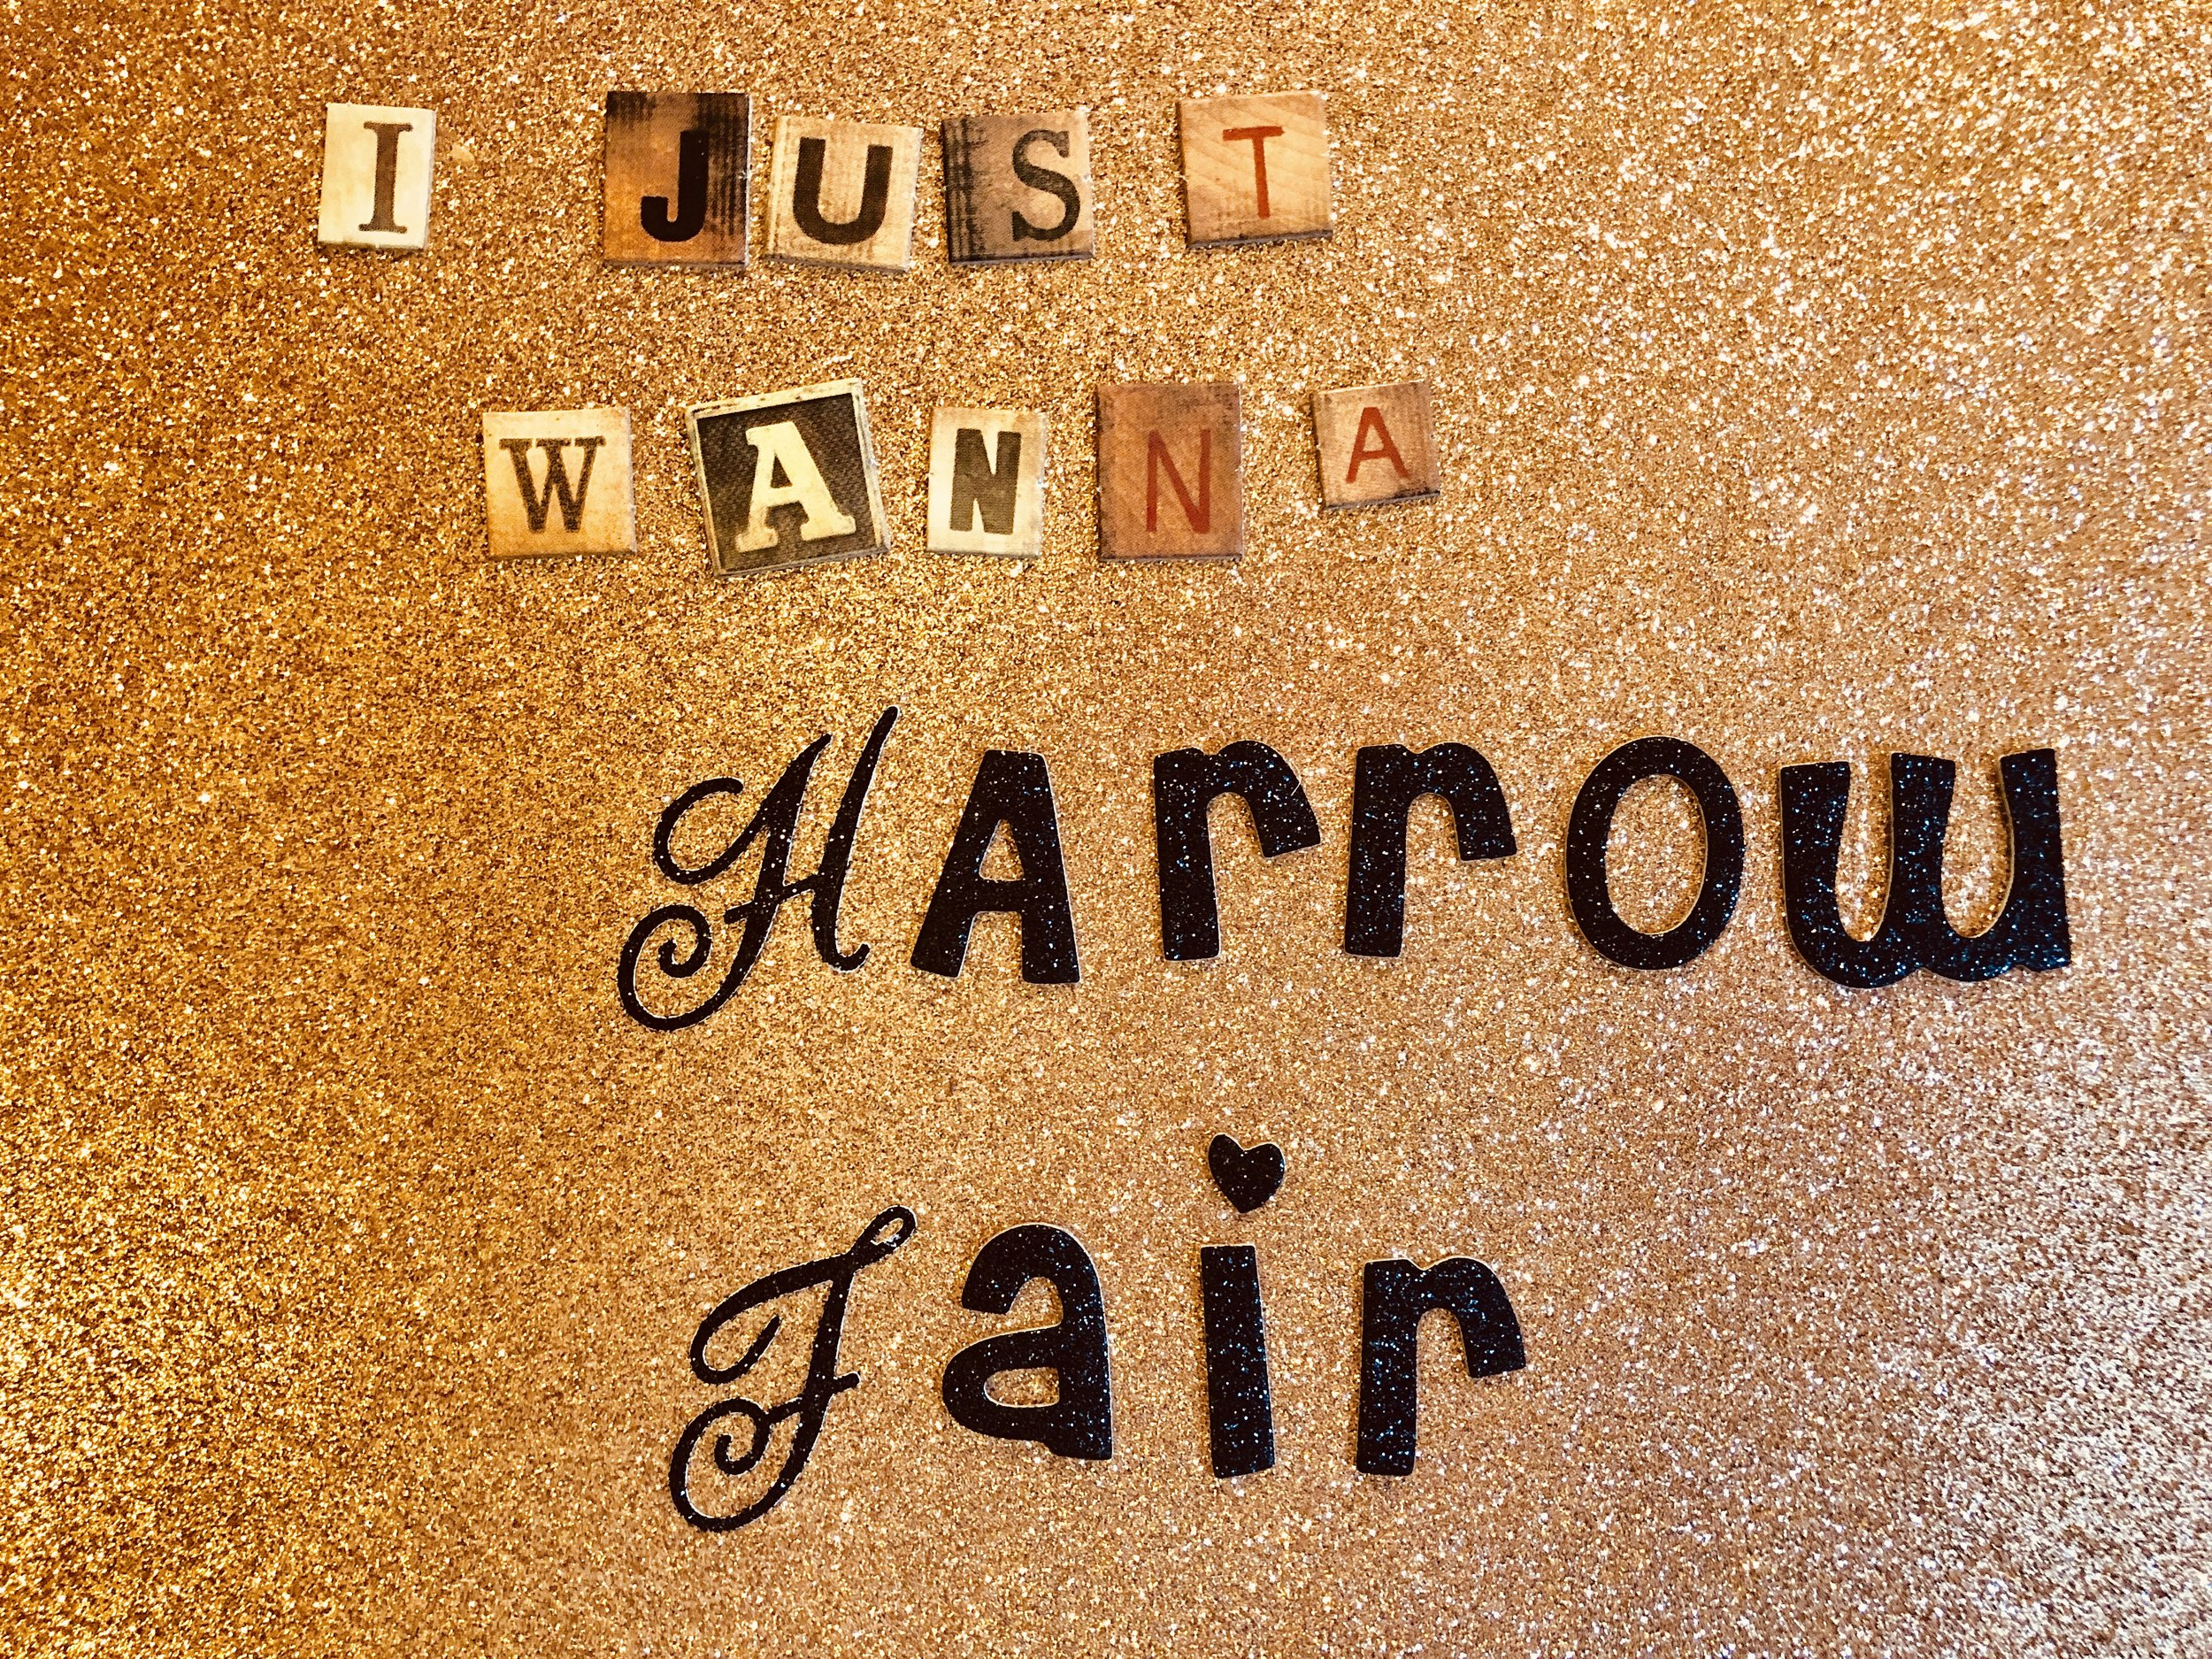 I Just Wanna_Harrow Fair_Single Artwork.jpg